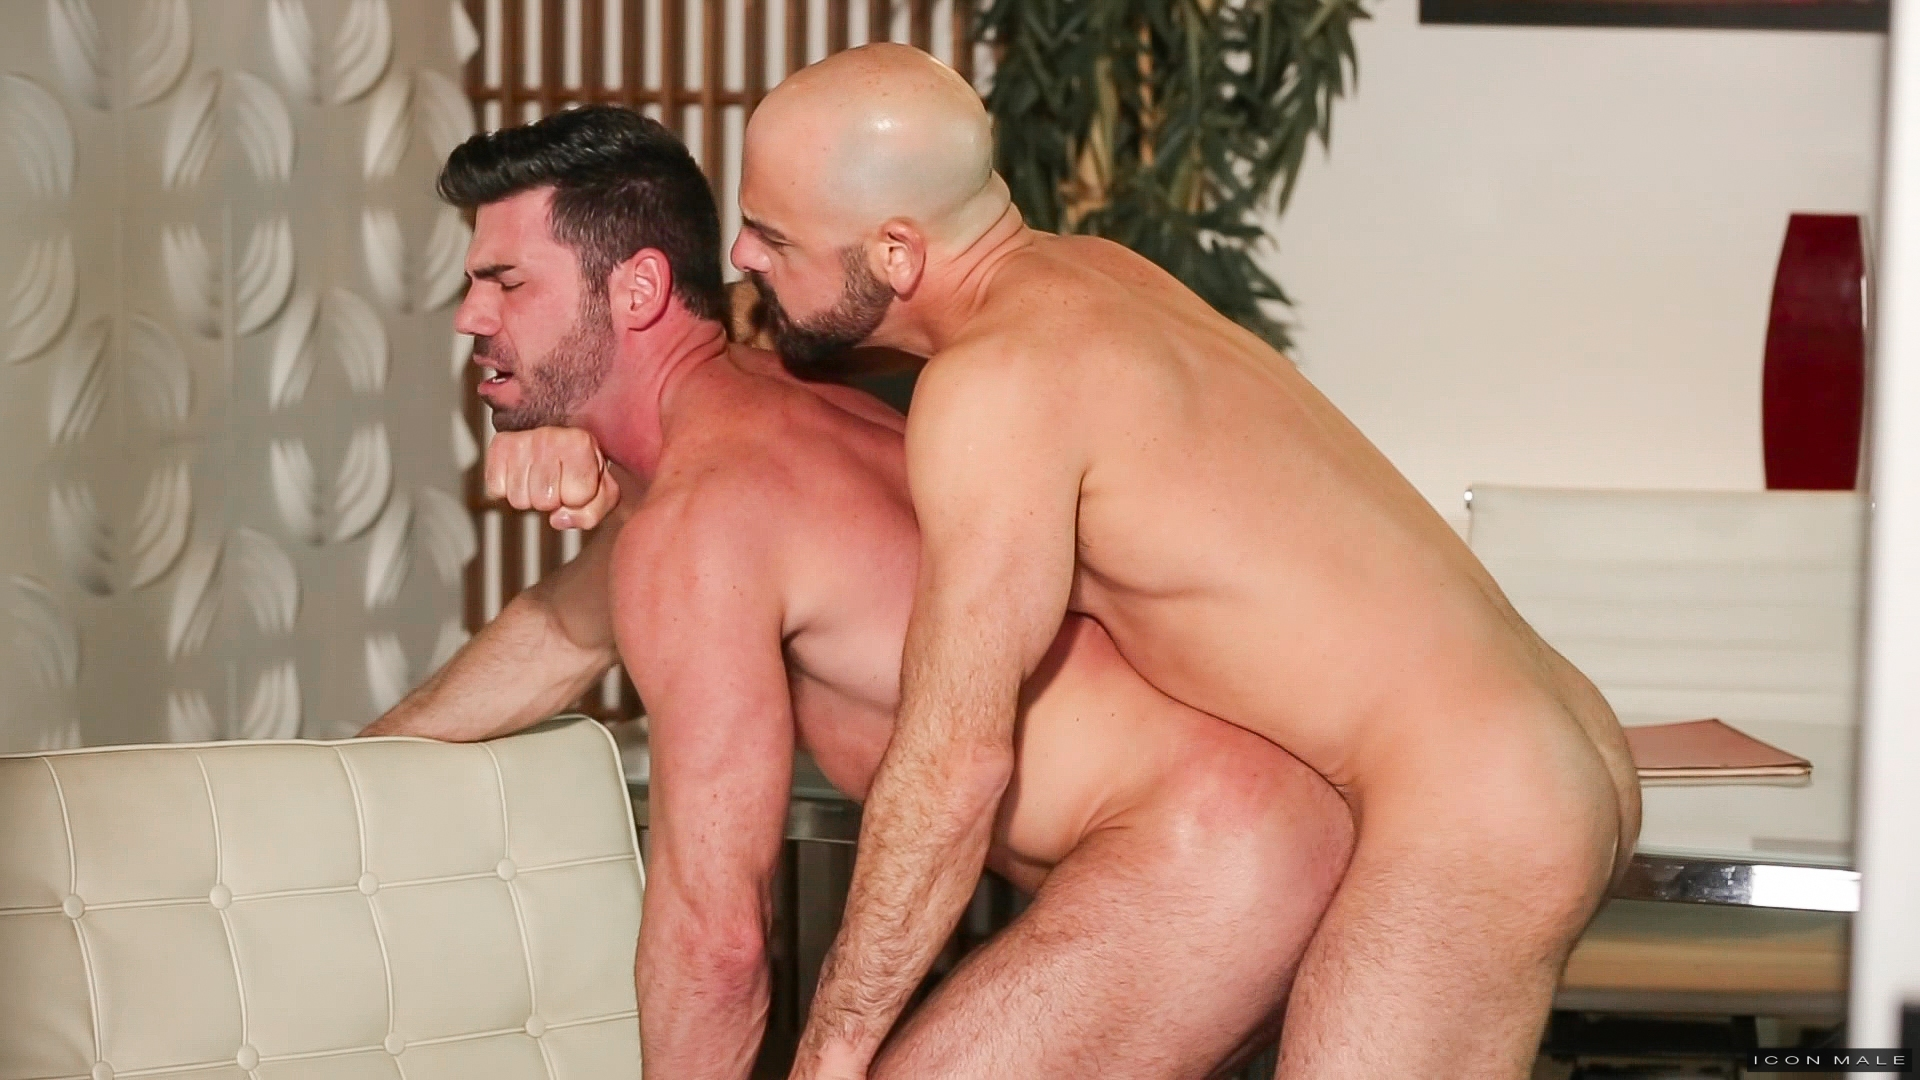 Adam Ruso Porn billy santoro and adam russo | gay pornredixxmen